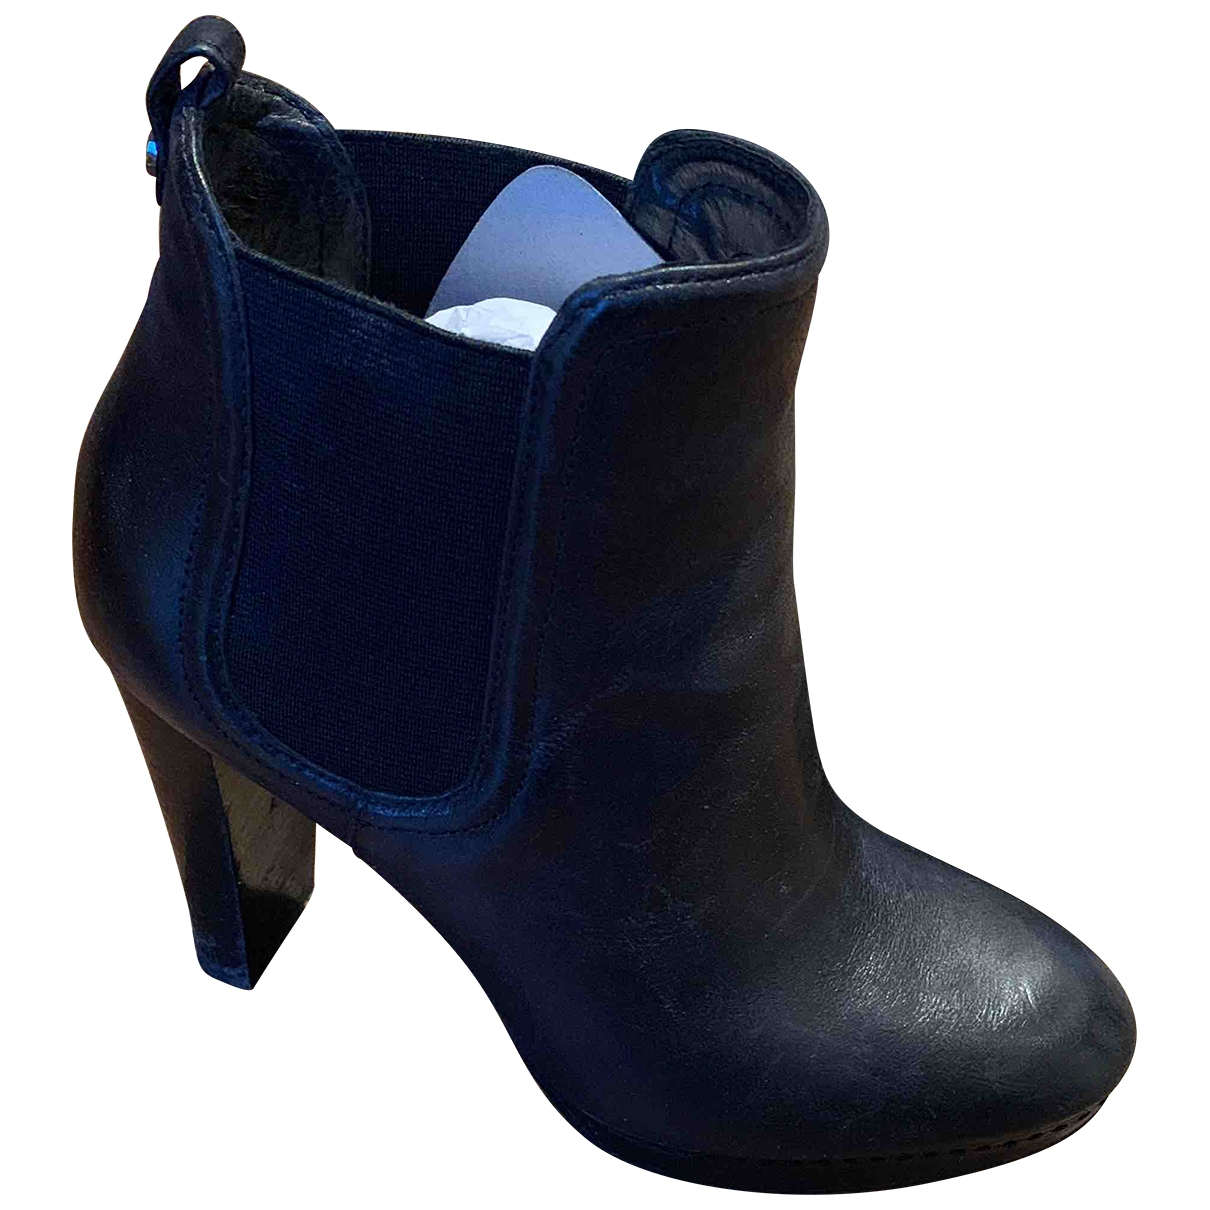 Michael Kors \N Black Leather Boots for Women 6 US